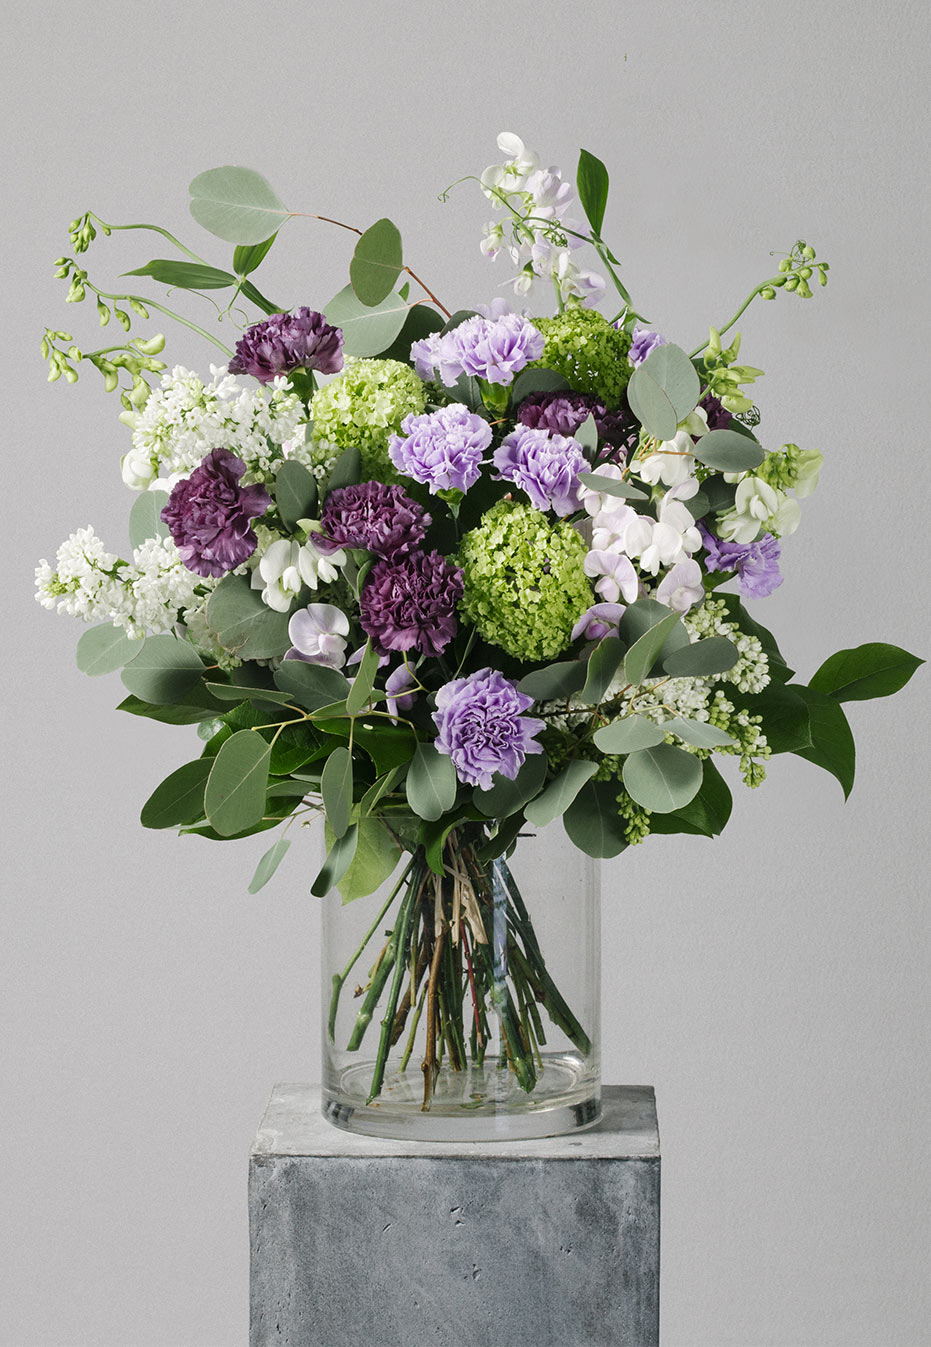 flower bouquet of purple carnation by flannel flowers